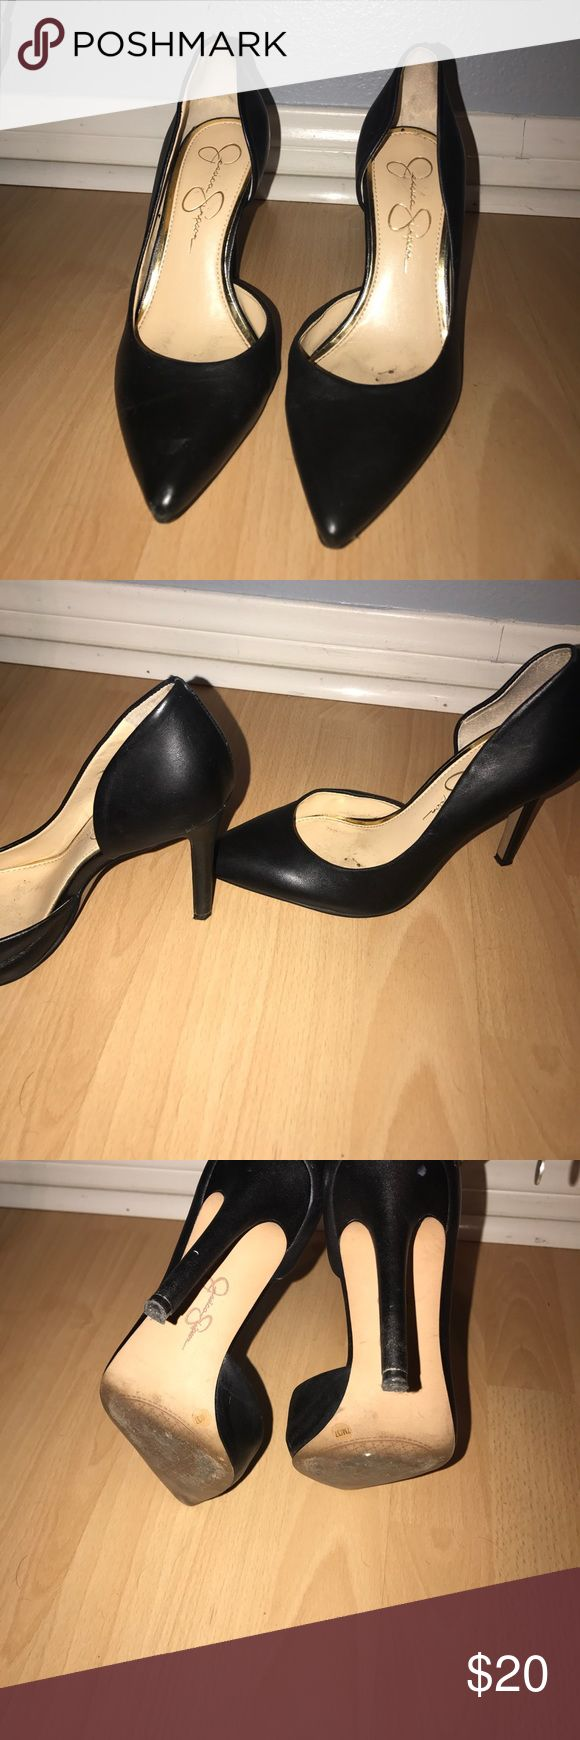 Jessica Simpson Claudette black pump sz 7 Jessica Simpson size 7  black pump! Wish I could actually keep these (got injured and right foot doesn't fit them anymore :/) they do have a scuff on the back and I have worn them a few times. Let me know if you have any questions Jessica Simpson Shoes Heels